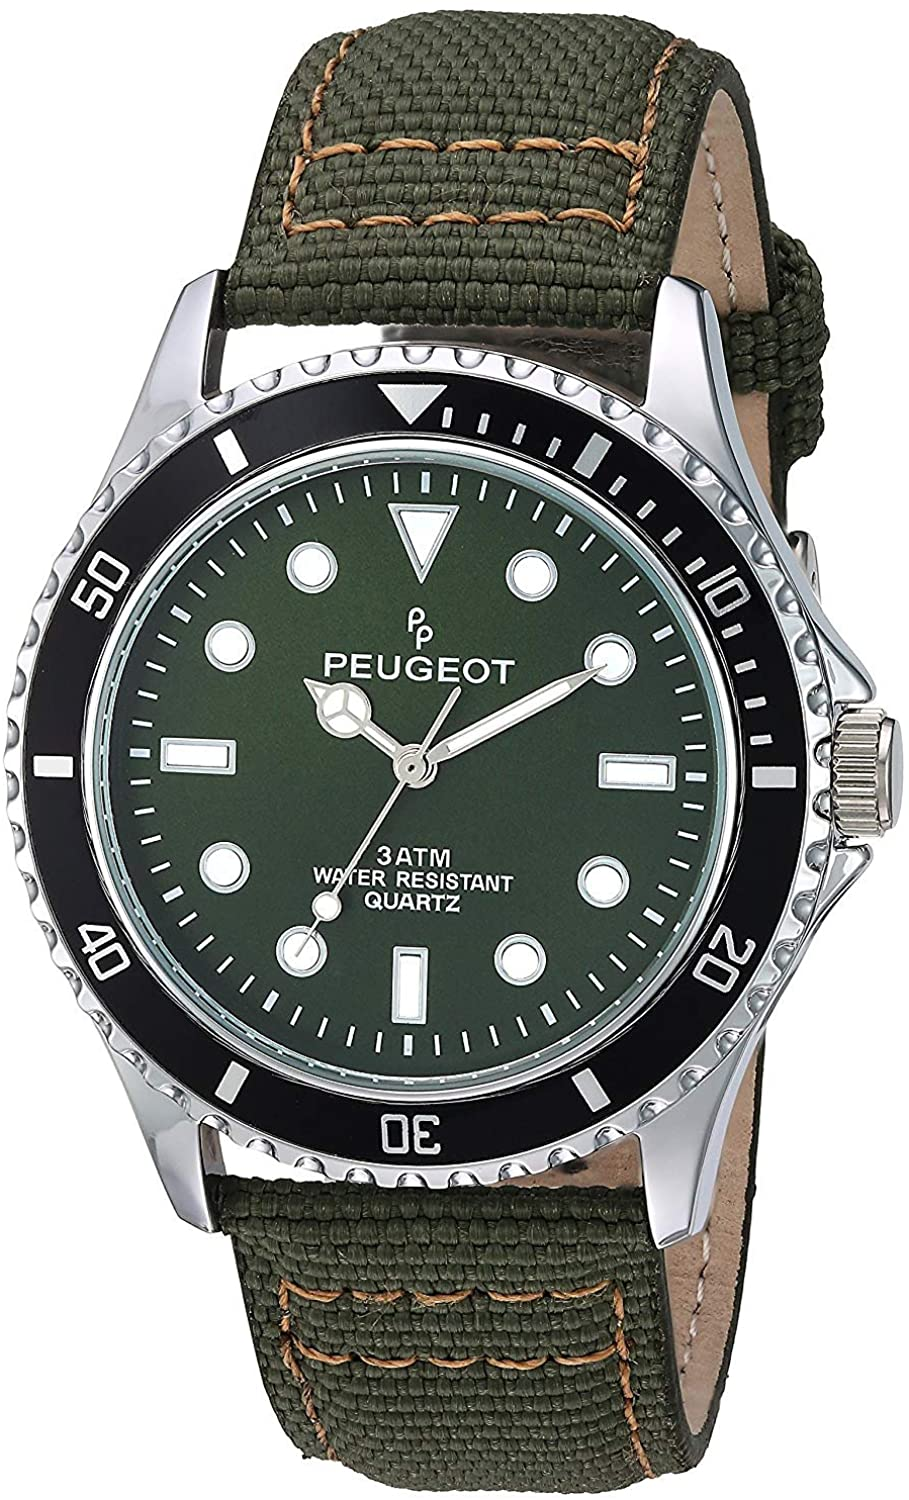 Peugeot Men's Sport Bezel Watch with Black Canvas Wrist Band